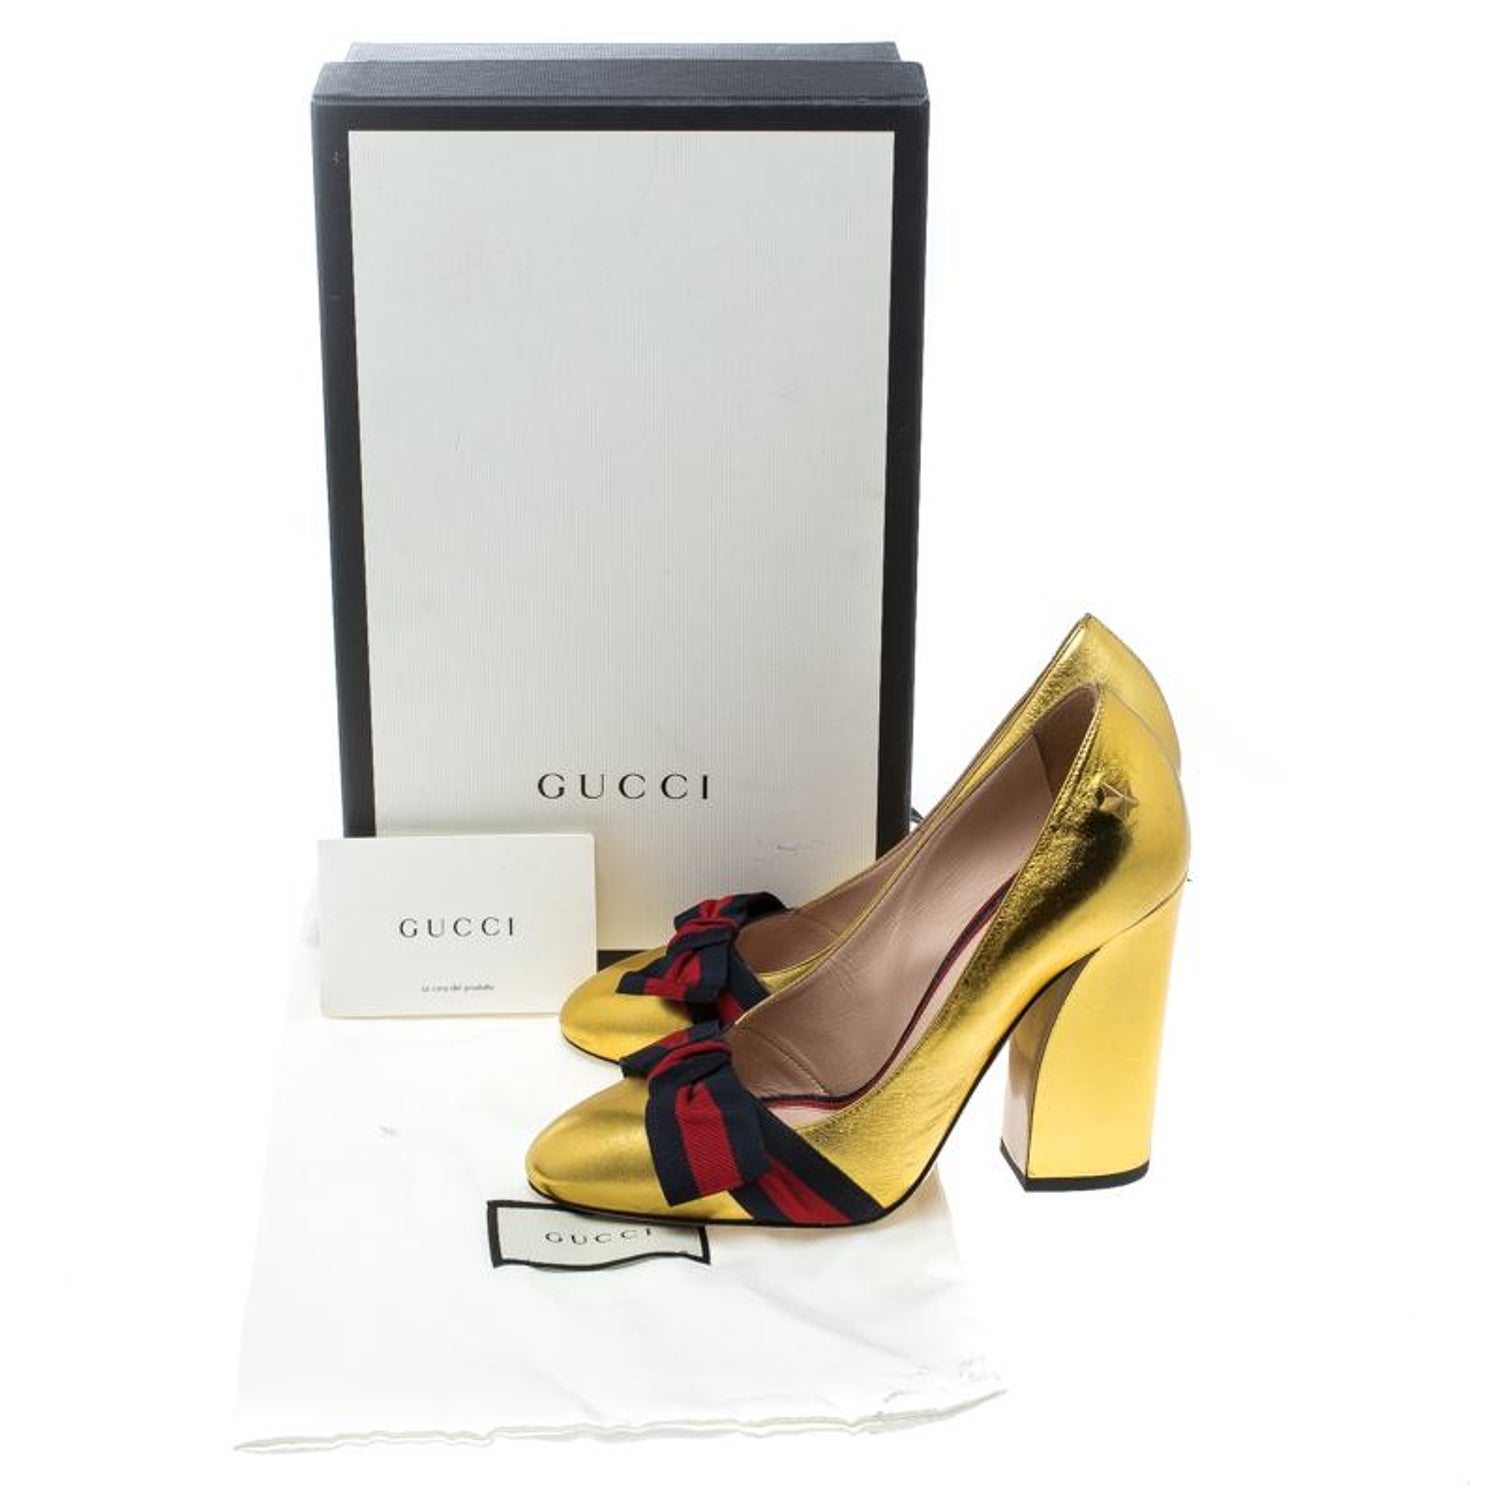 fb6284f810a Gucci Metallic Gold Leather Web Bow Detail Pumps Size 37.5 For Sale at  1stdibs